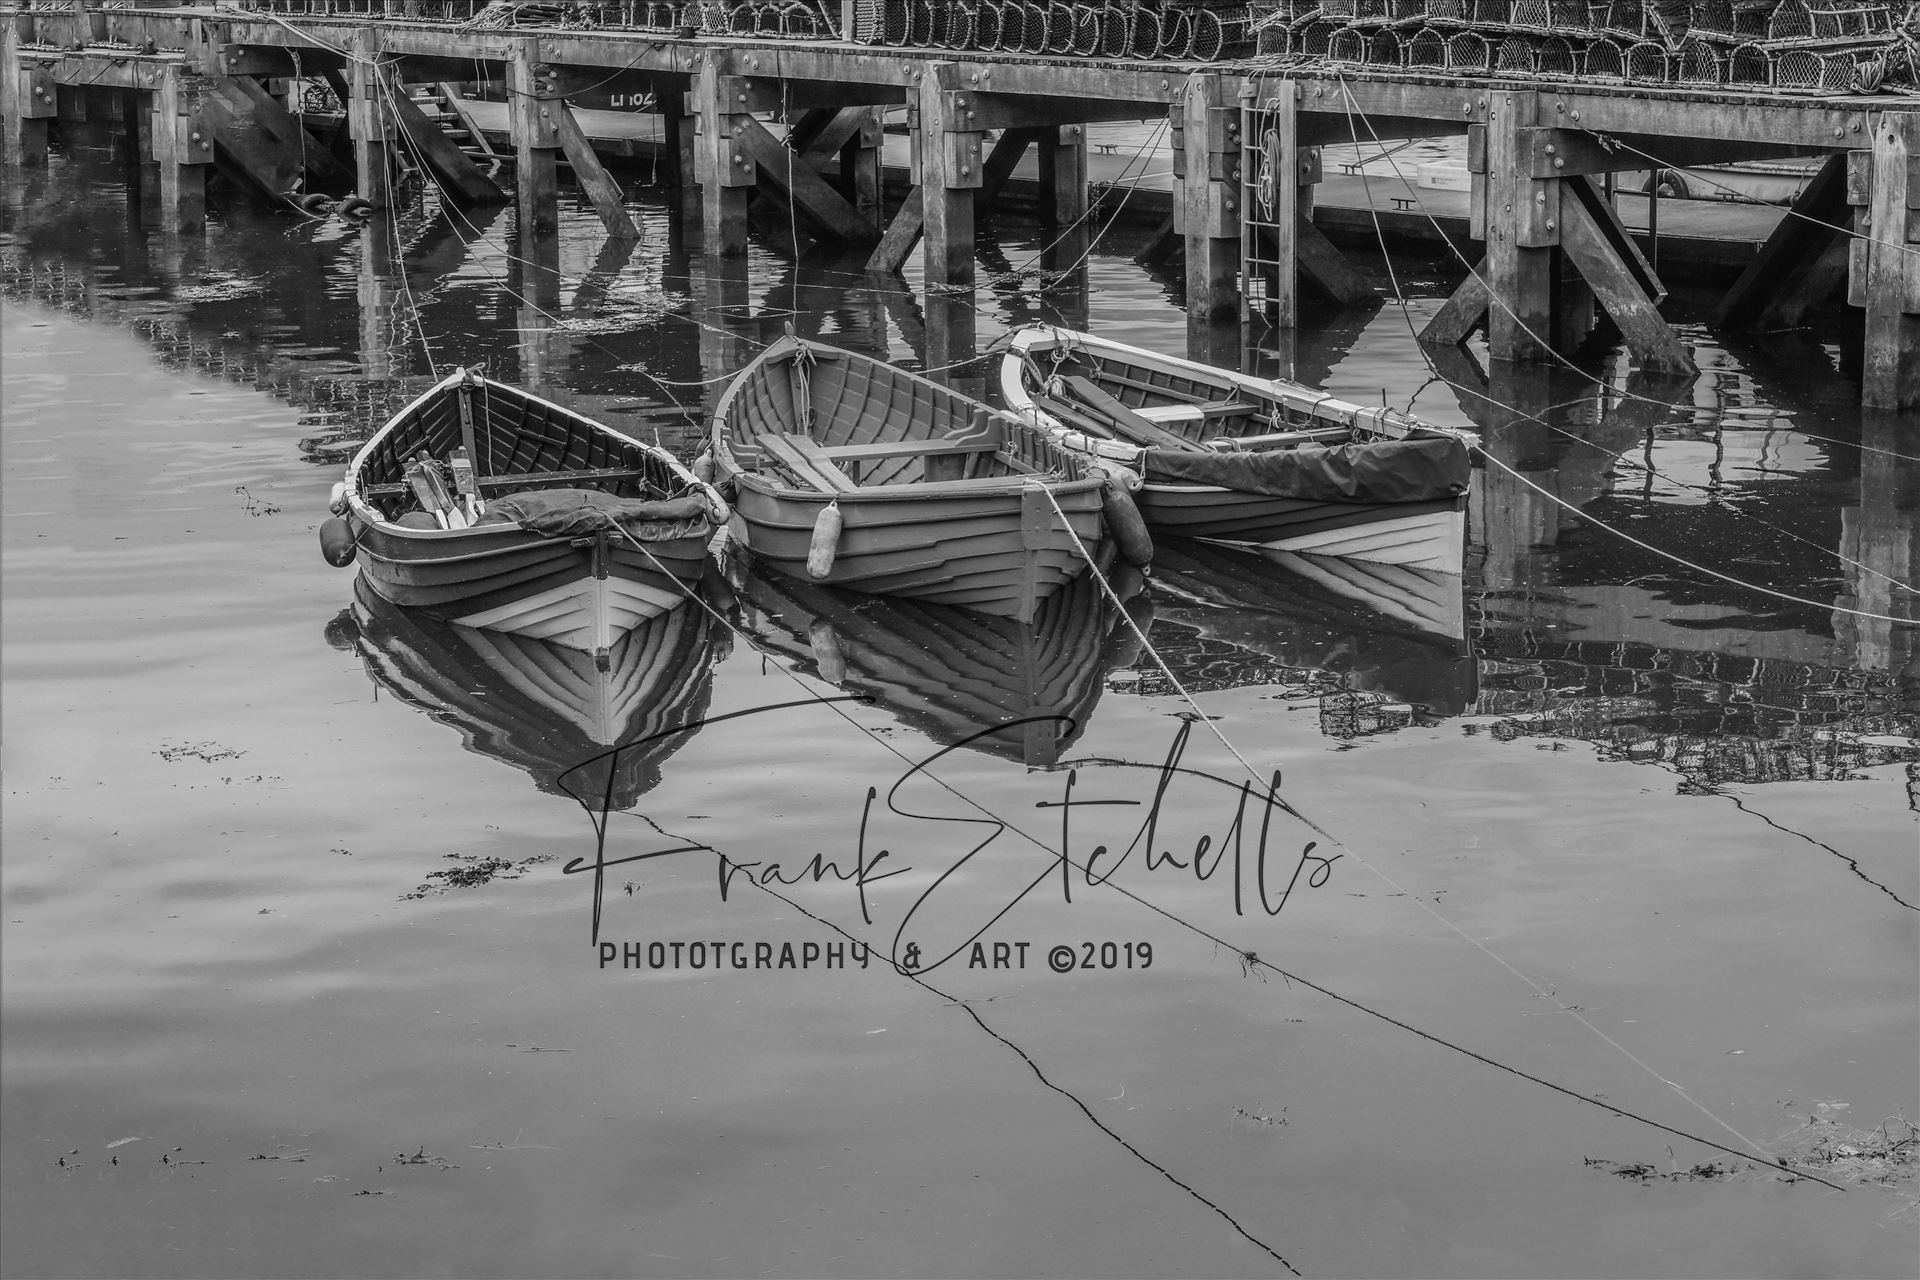 Tethered Boats Whitby 1, Edit; Duo-Tone - On a trip to Whitby in Yorkshire in 2012 and a walk through the town brought us to the harbour quay side and these small tethered boats, their bows and ropes reflected in the sea water and lobster pots neatly in stacks on the walkway. A